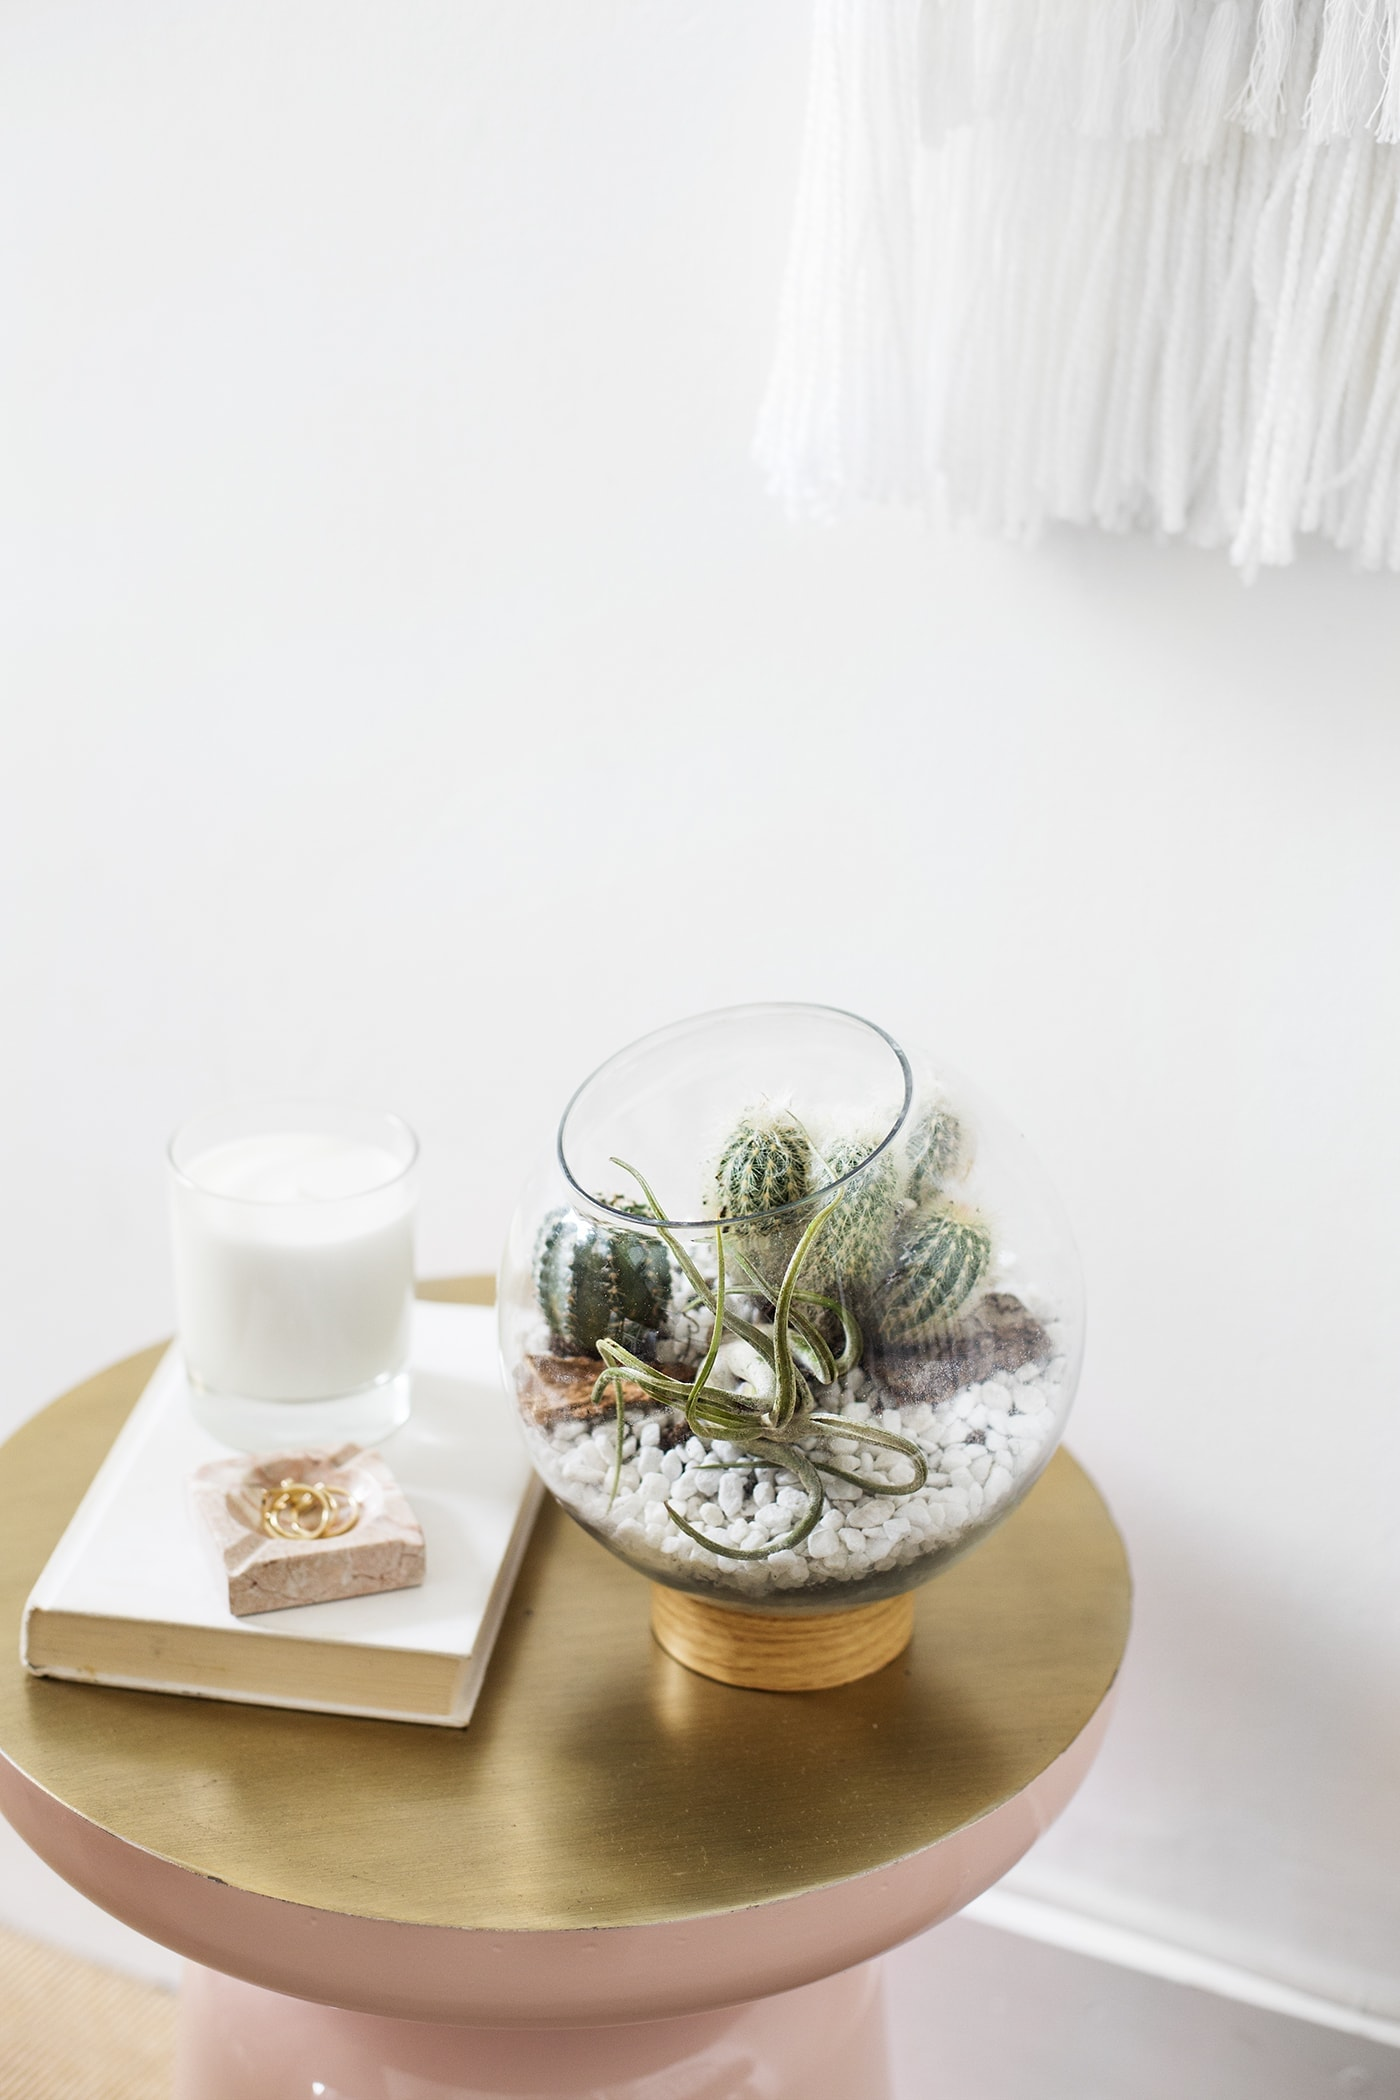 Easy mid century style terrarium project | home DIY | house plants | cacti | craft tutorial